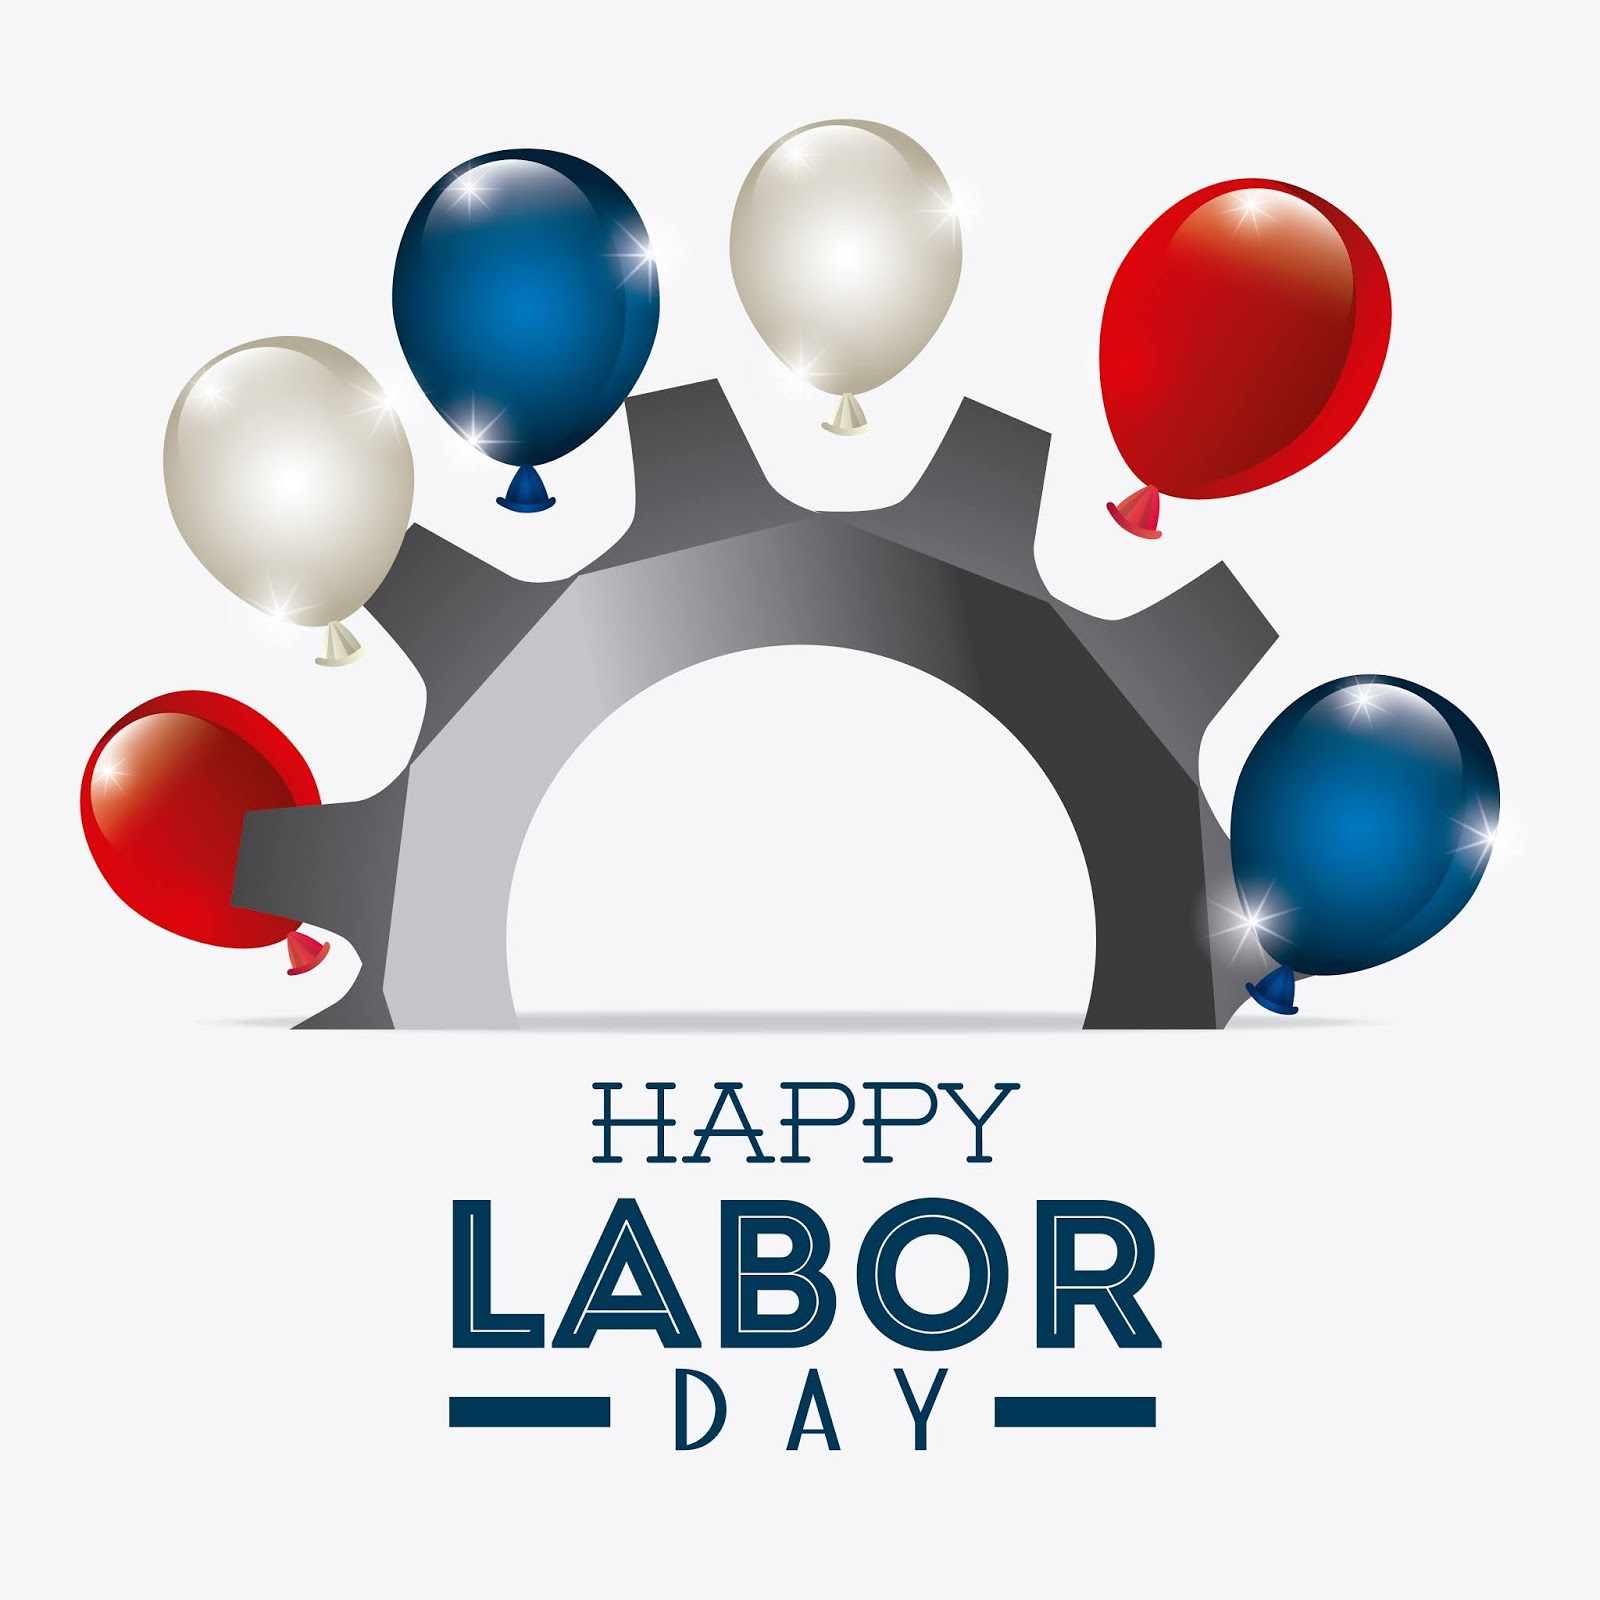 Happy Labor Day Design A	 Free Download Vector CDR, AI, EPS and PNG Formats